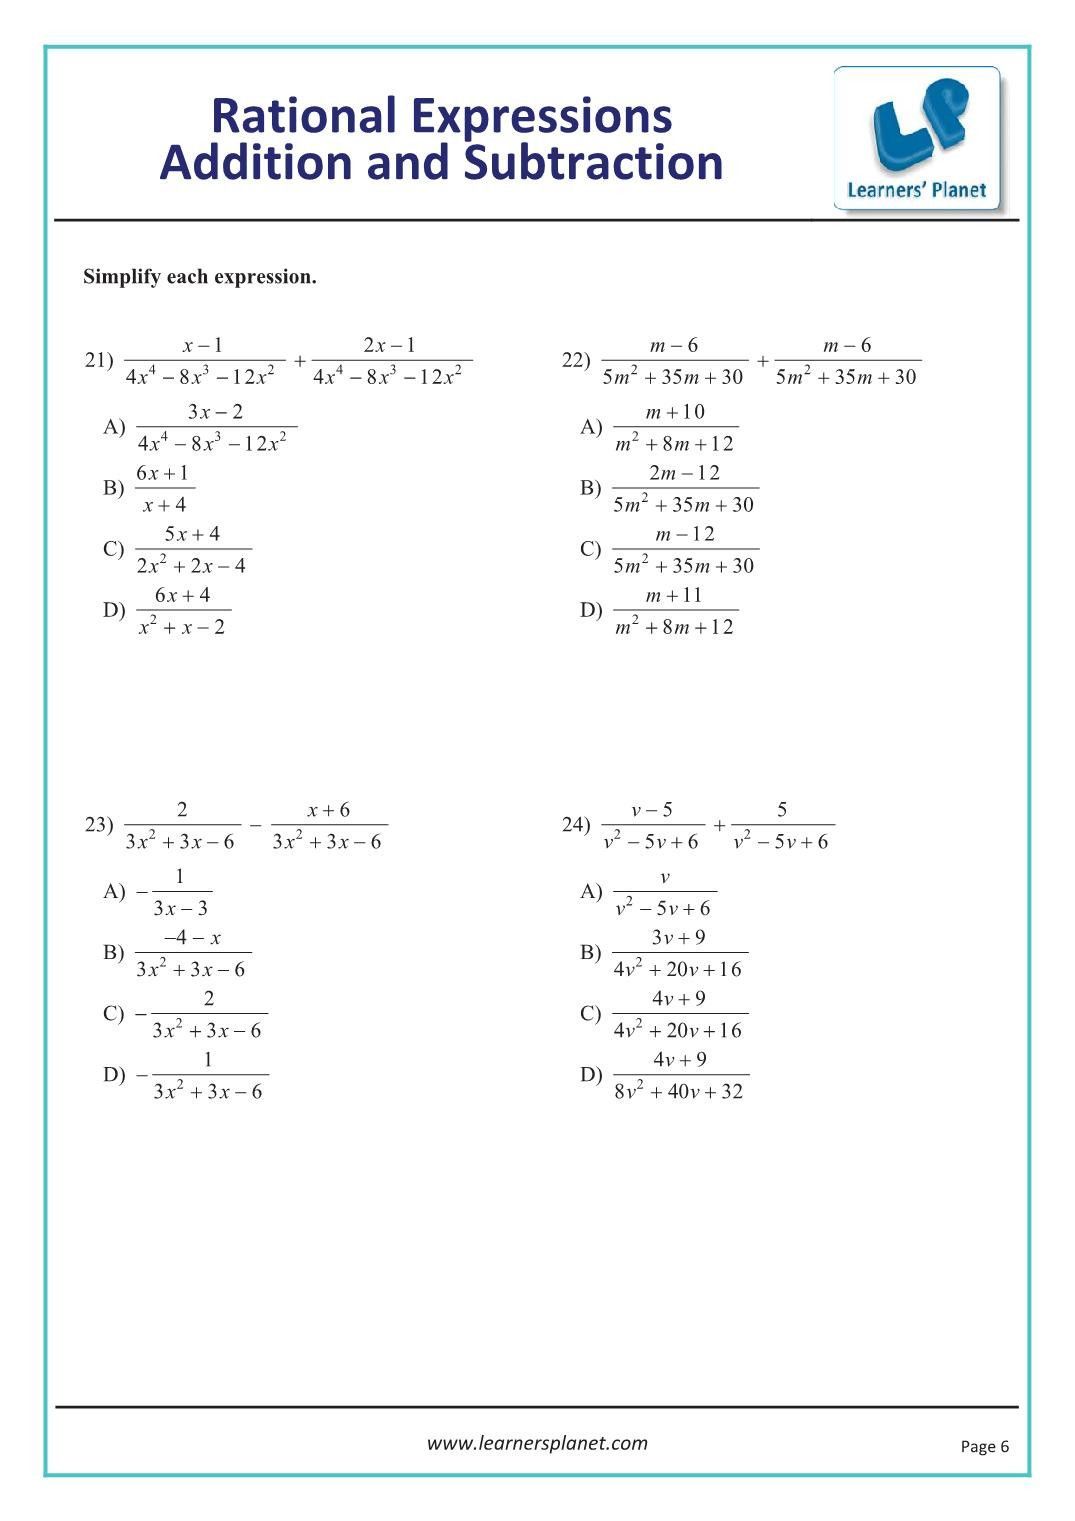 Dividing Rational Expressions Worksheet In 2021 Rational Expressions Nouns Worksheet Expressions Addition of rational expressions